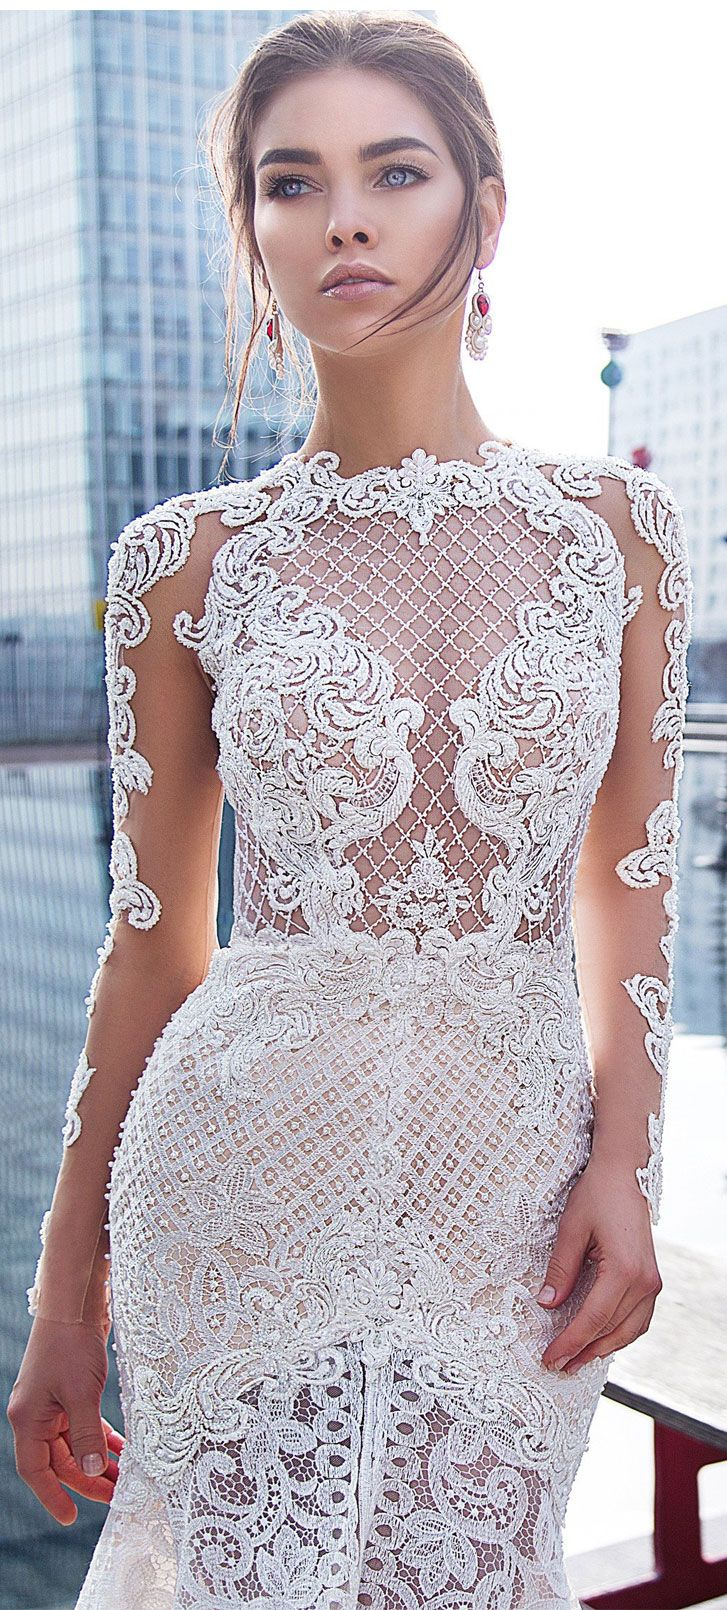 Long sleeves embroidered with pearls and beads Mermaid wedding dress chapel train #weddingdresses #bride #wedding #weddingdress #weddinggown